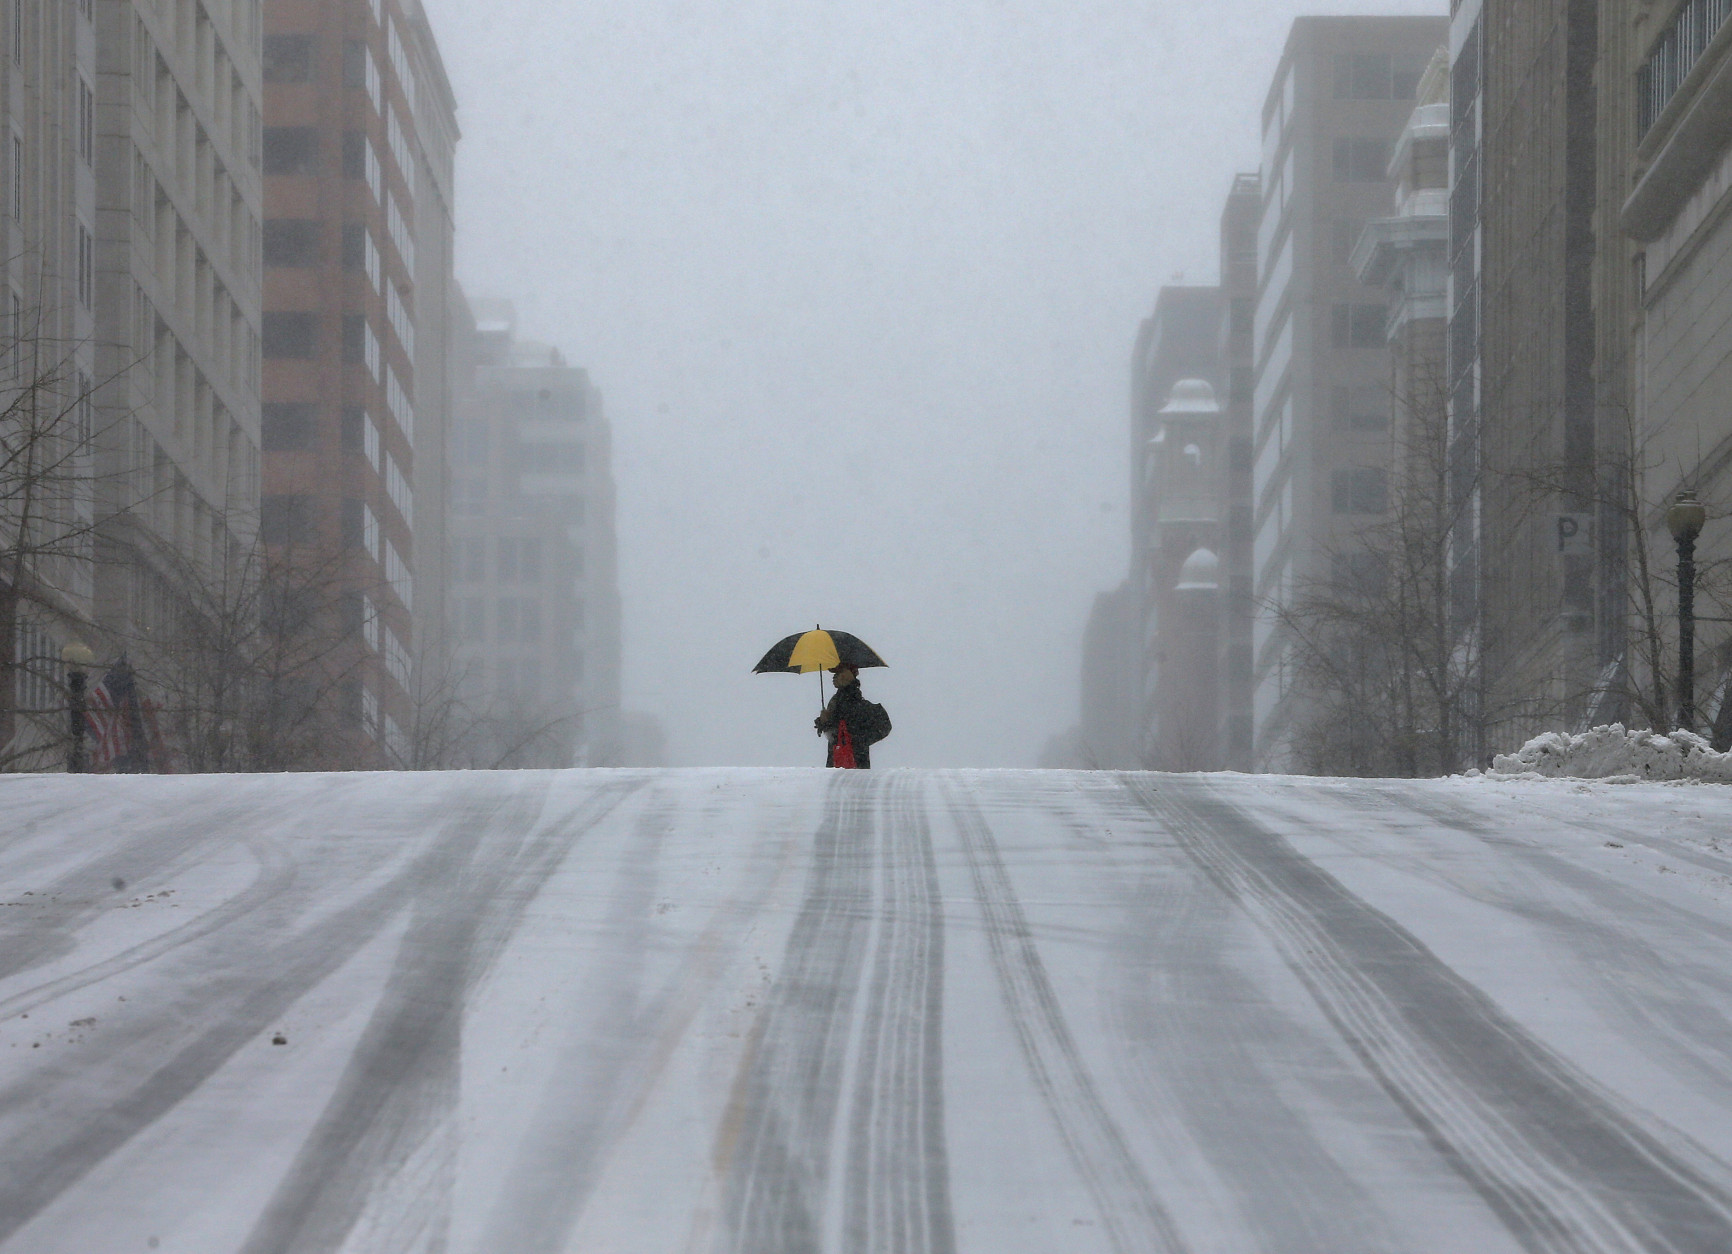 After nightmarish commute, what's next for this week's weather?